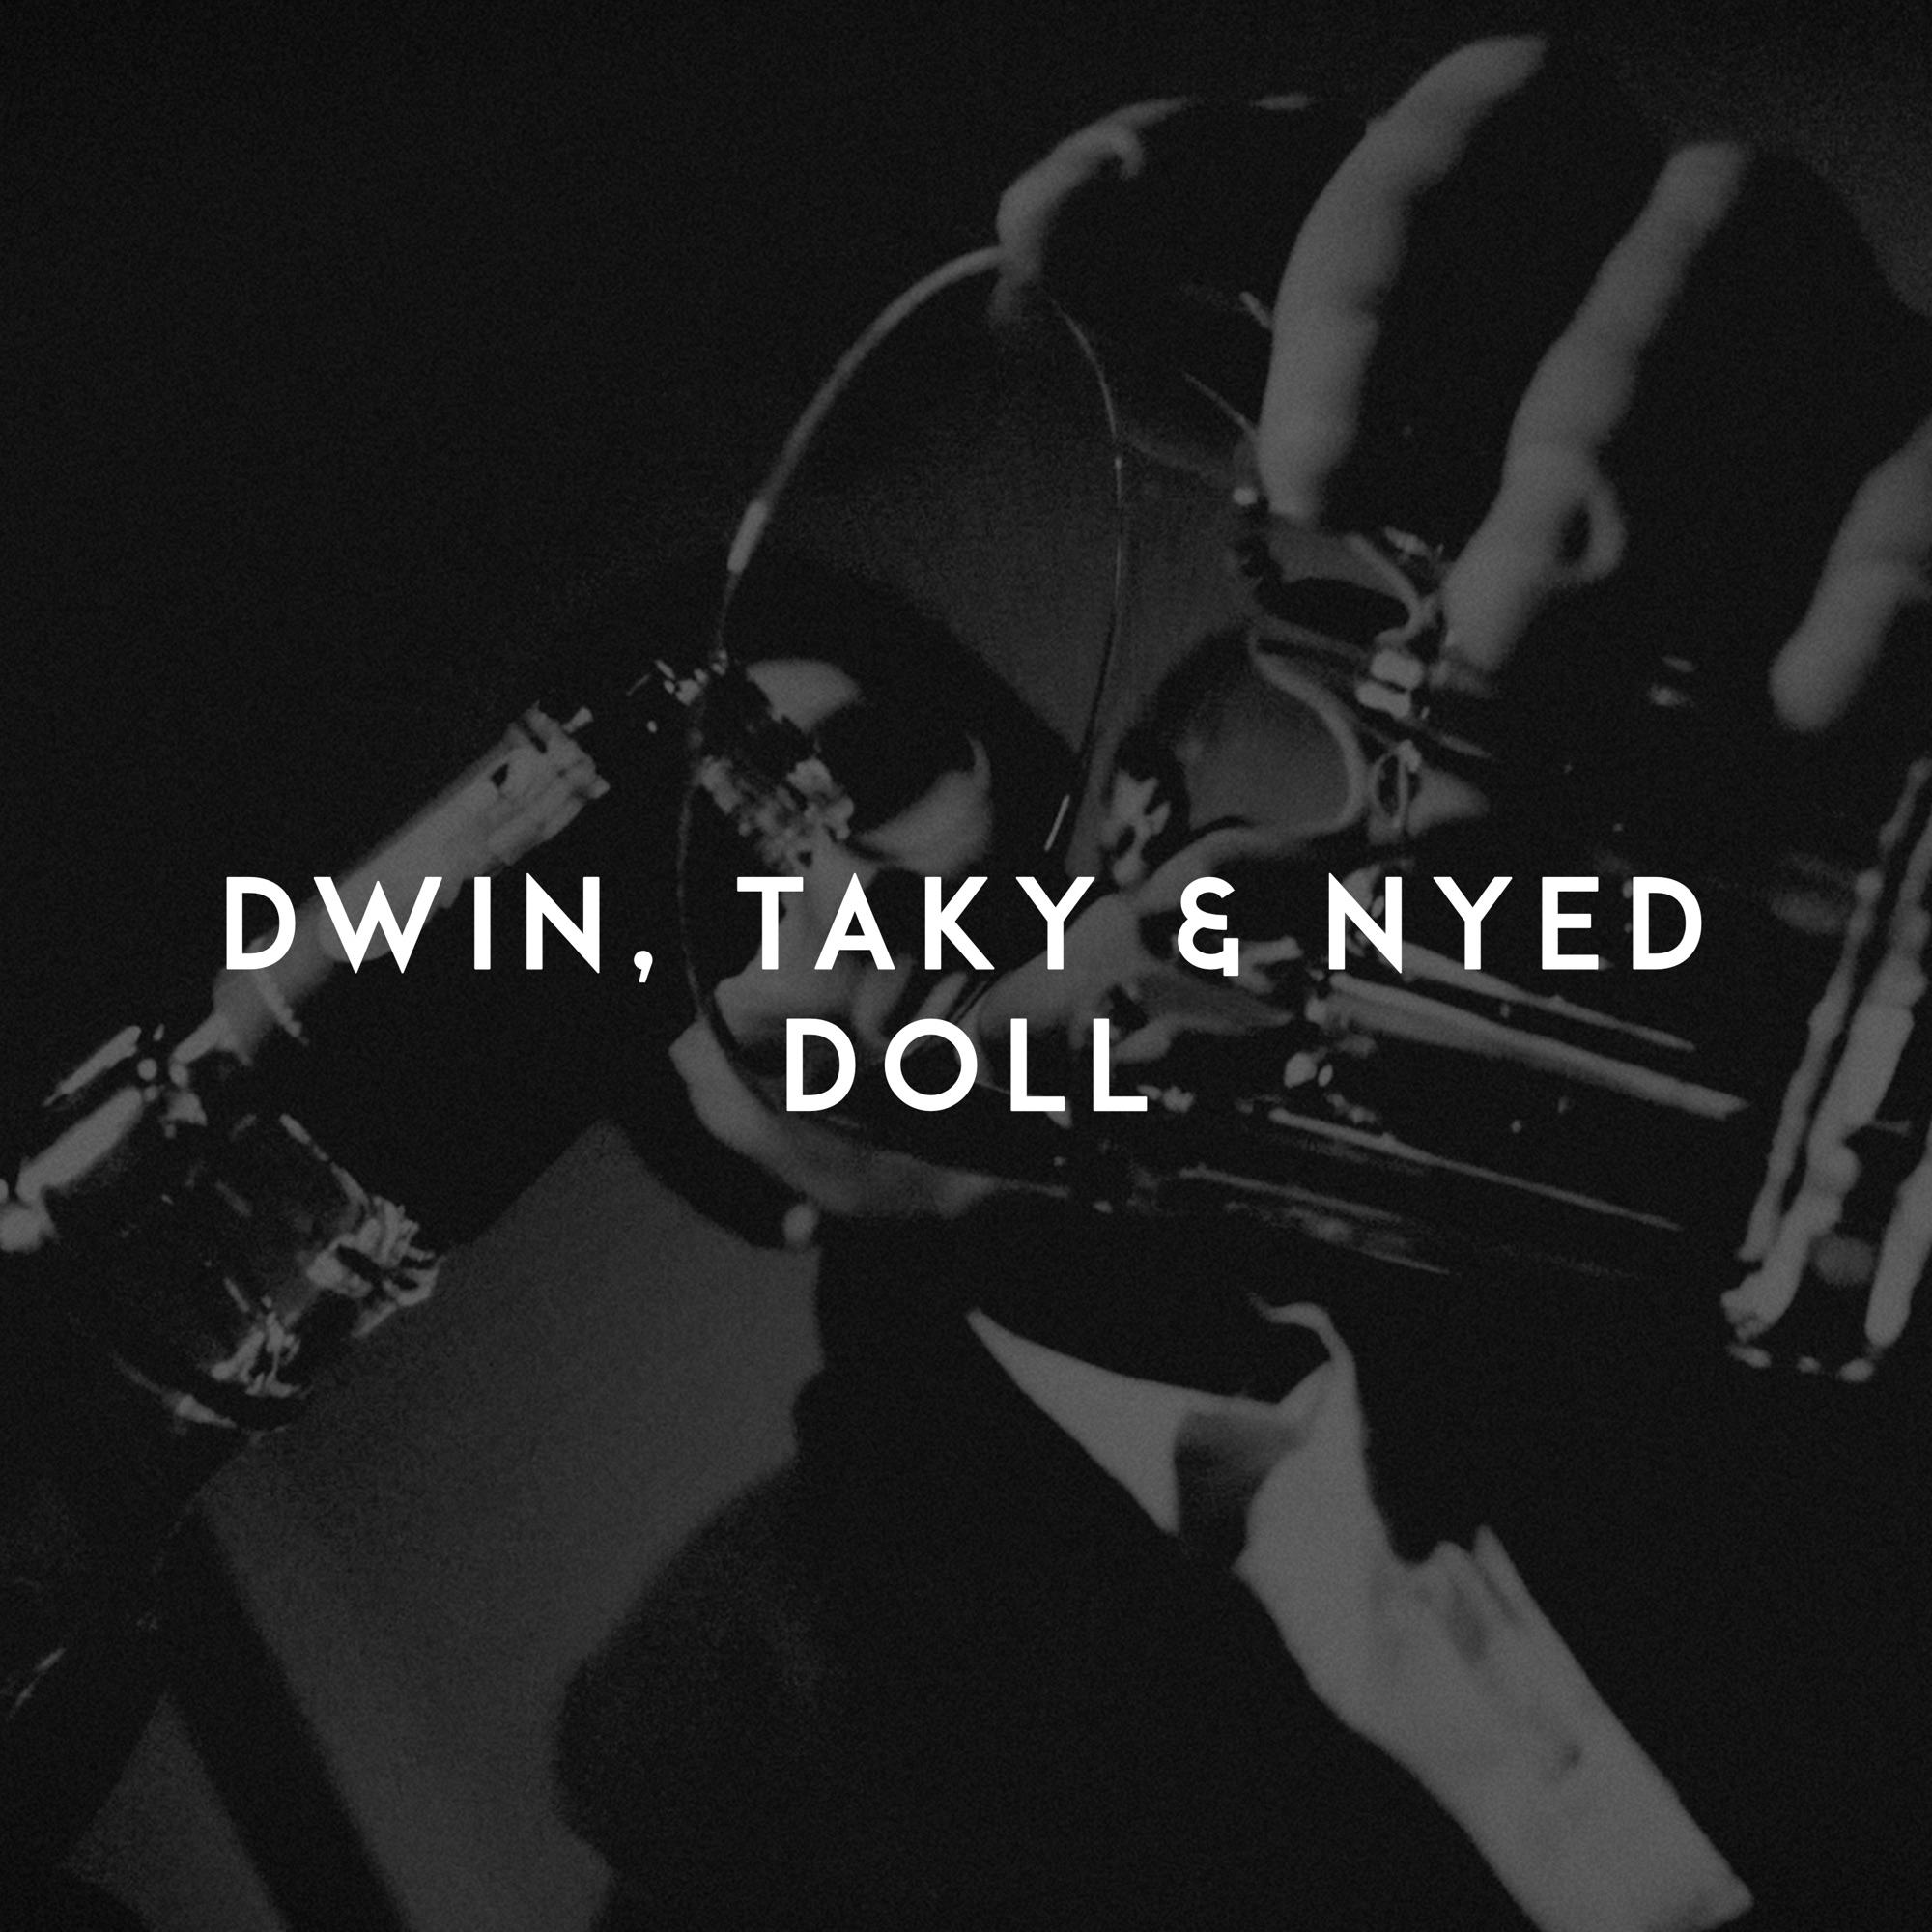 Art for Doll by Dwin & Taky & Nyed